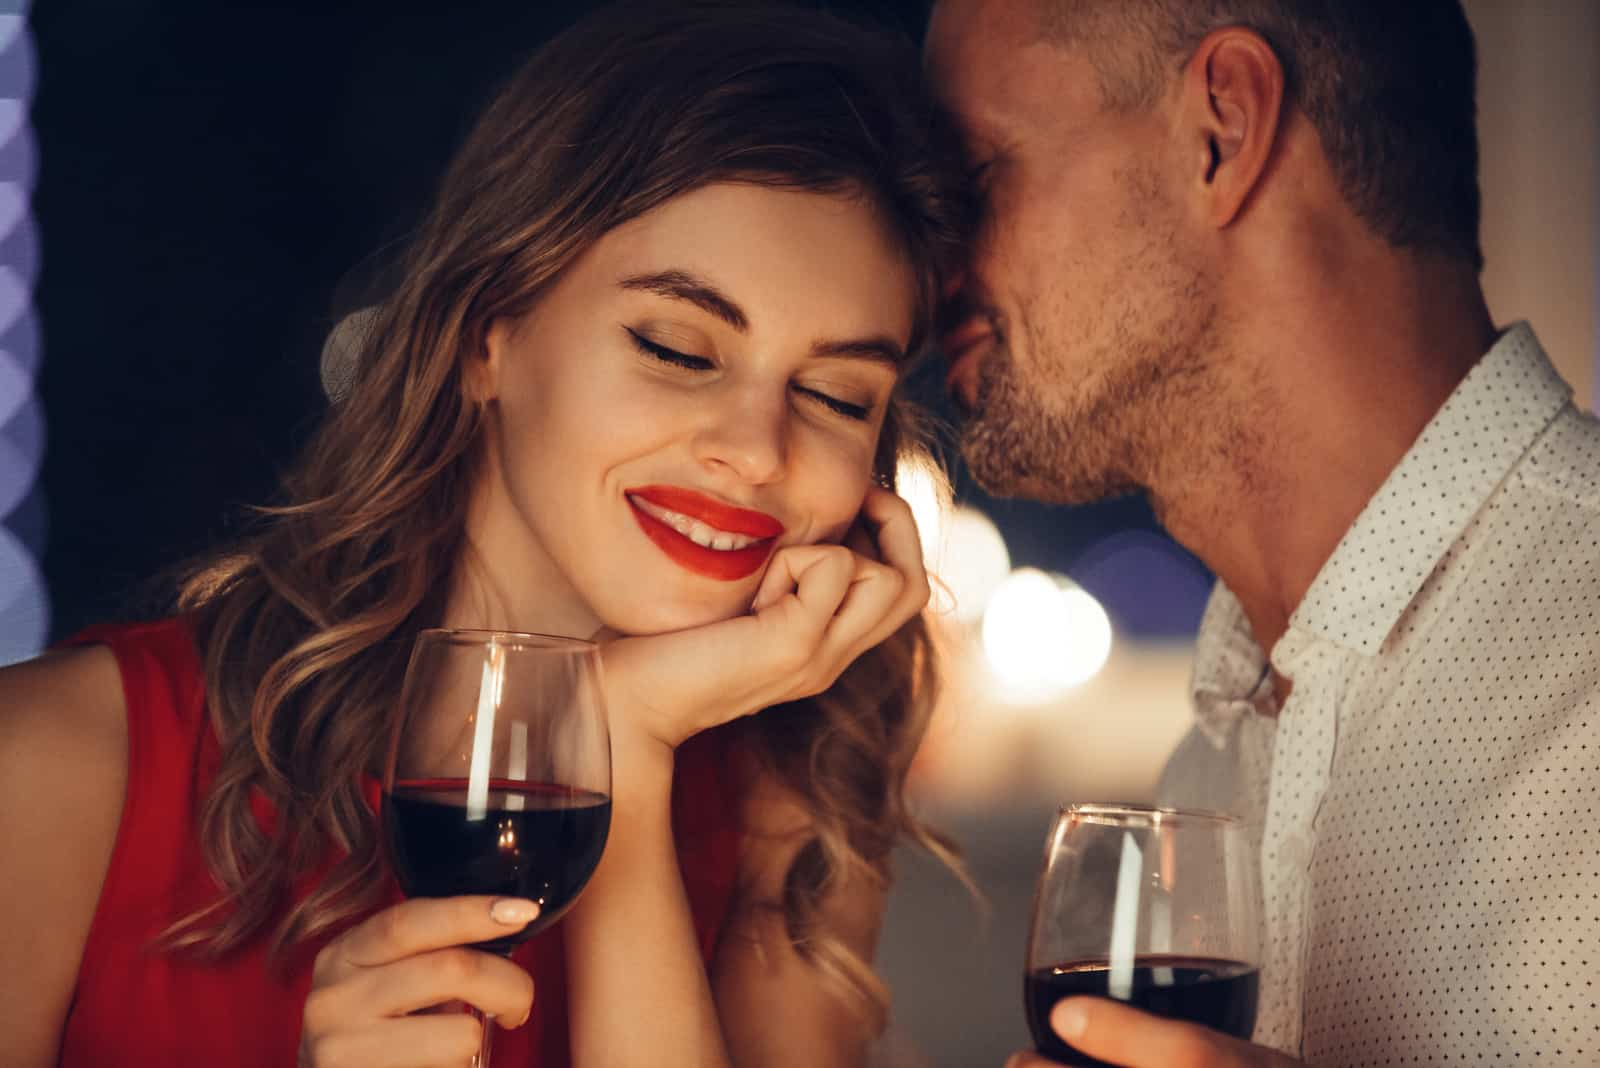 a man whispers in a woman's ear while drinking wine